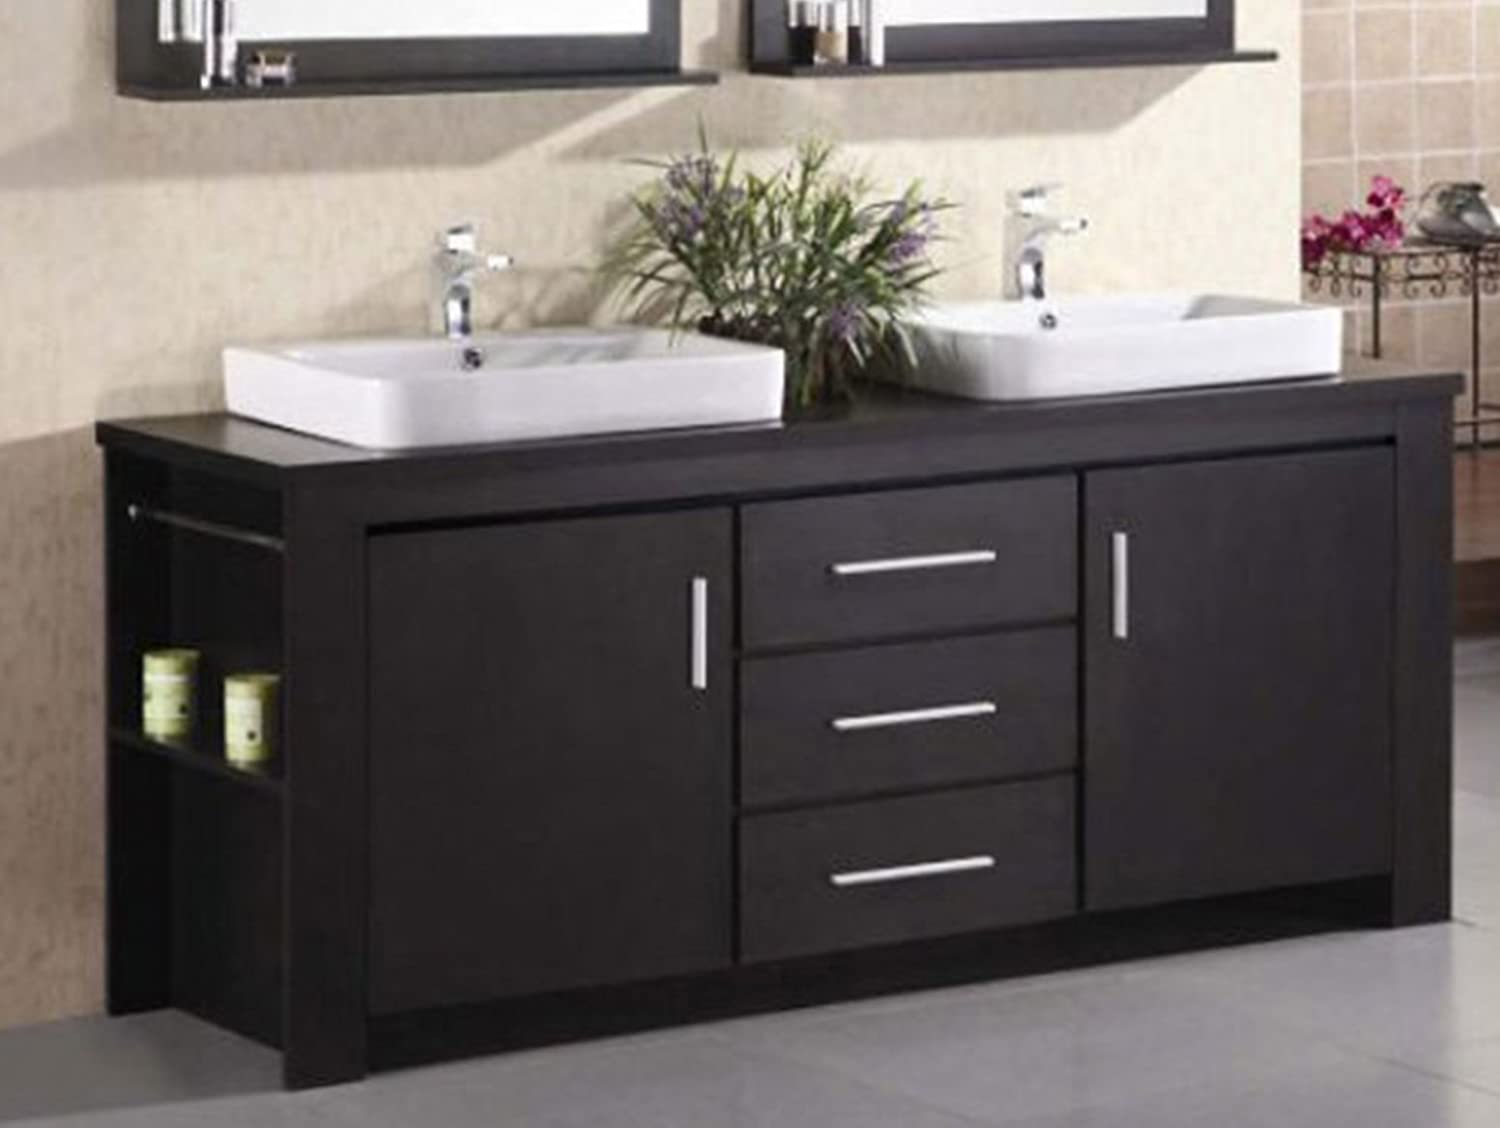 Design Element Washington Double Drop-In Vessel Sink Vanity Set with Three Drawers and Espresso Finish, 72-Inch Design Element - Dropship DEC083D